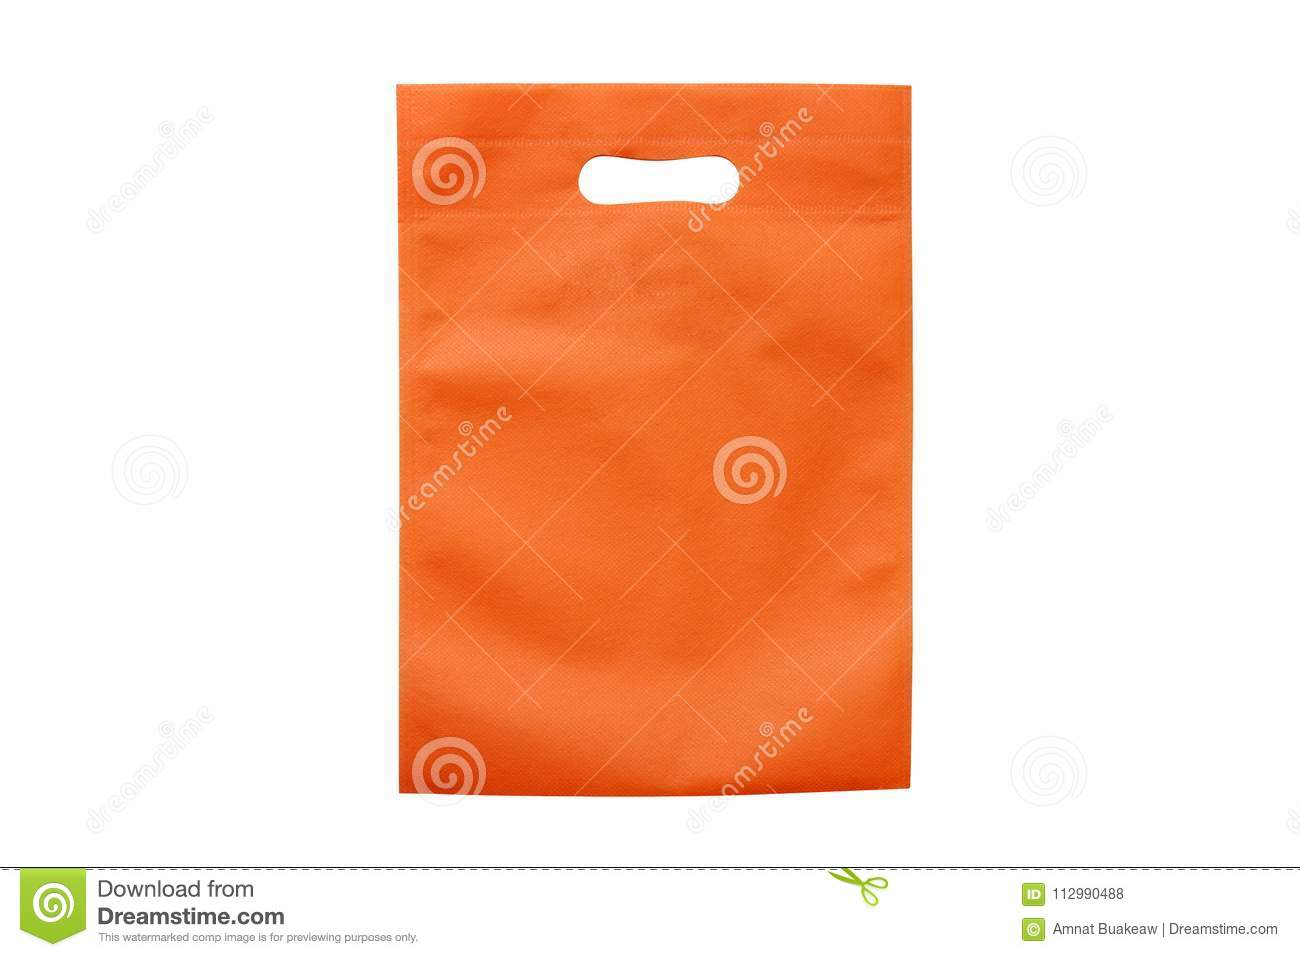 Orange bags, eco cloth bags to reduce global warming, shopping bags, plastic bag, recycling bags, bag for food